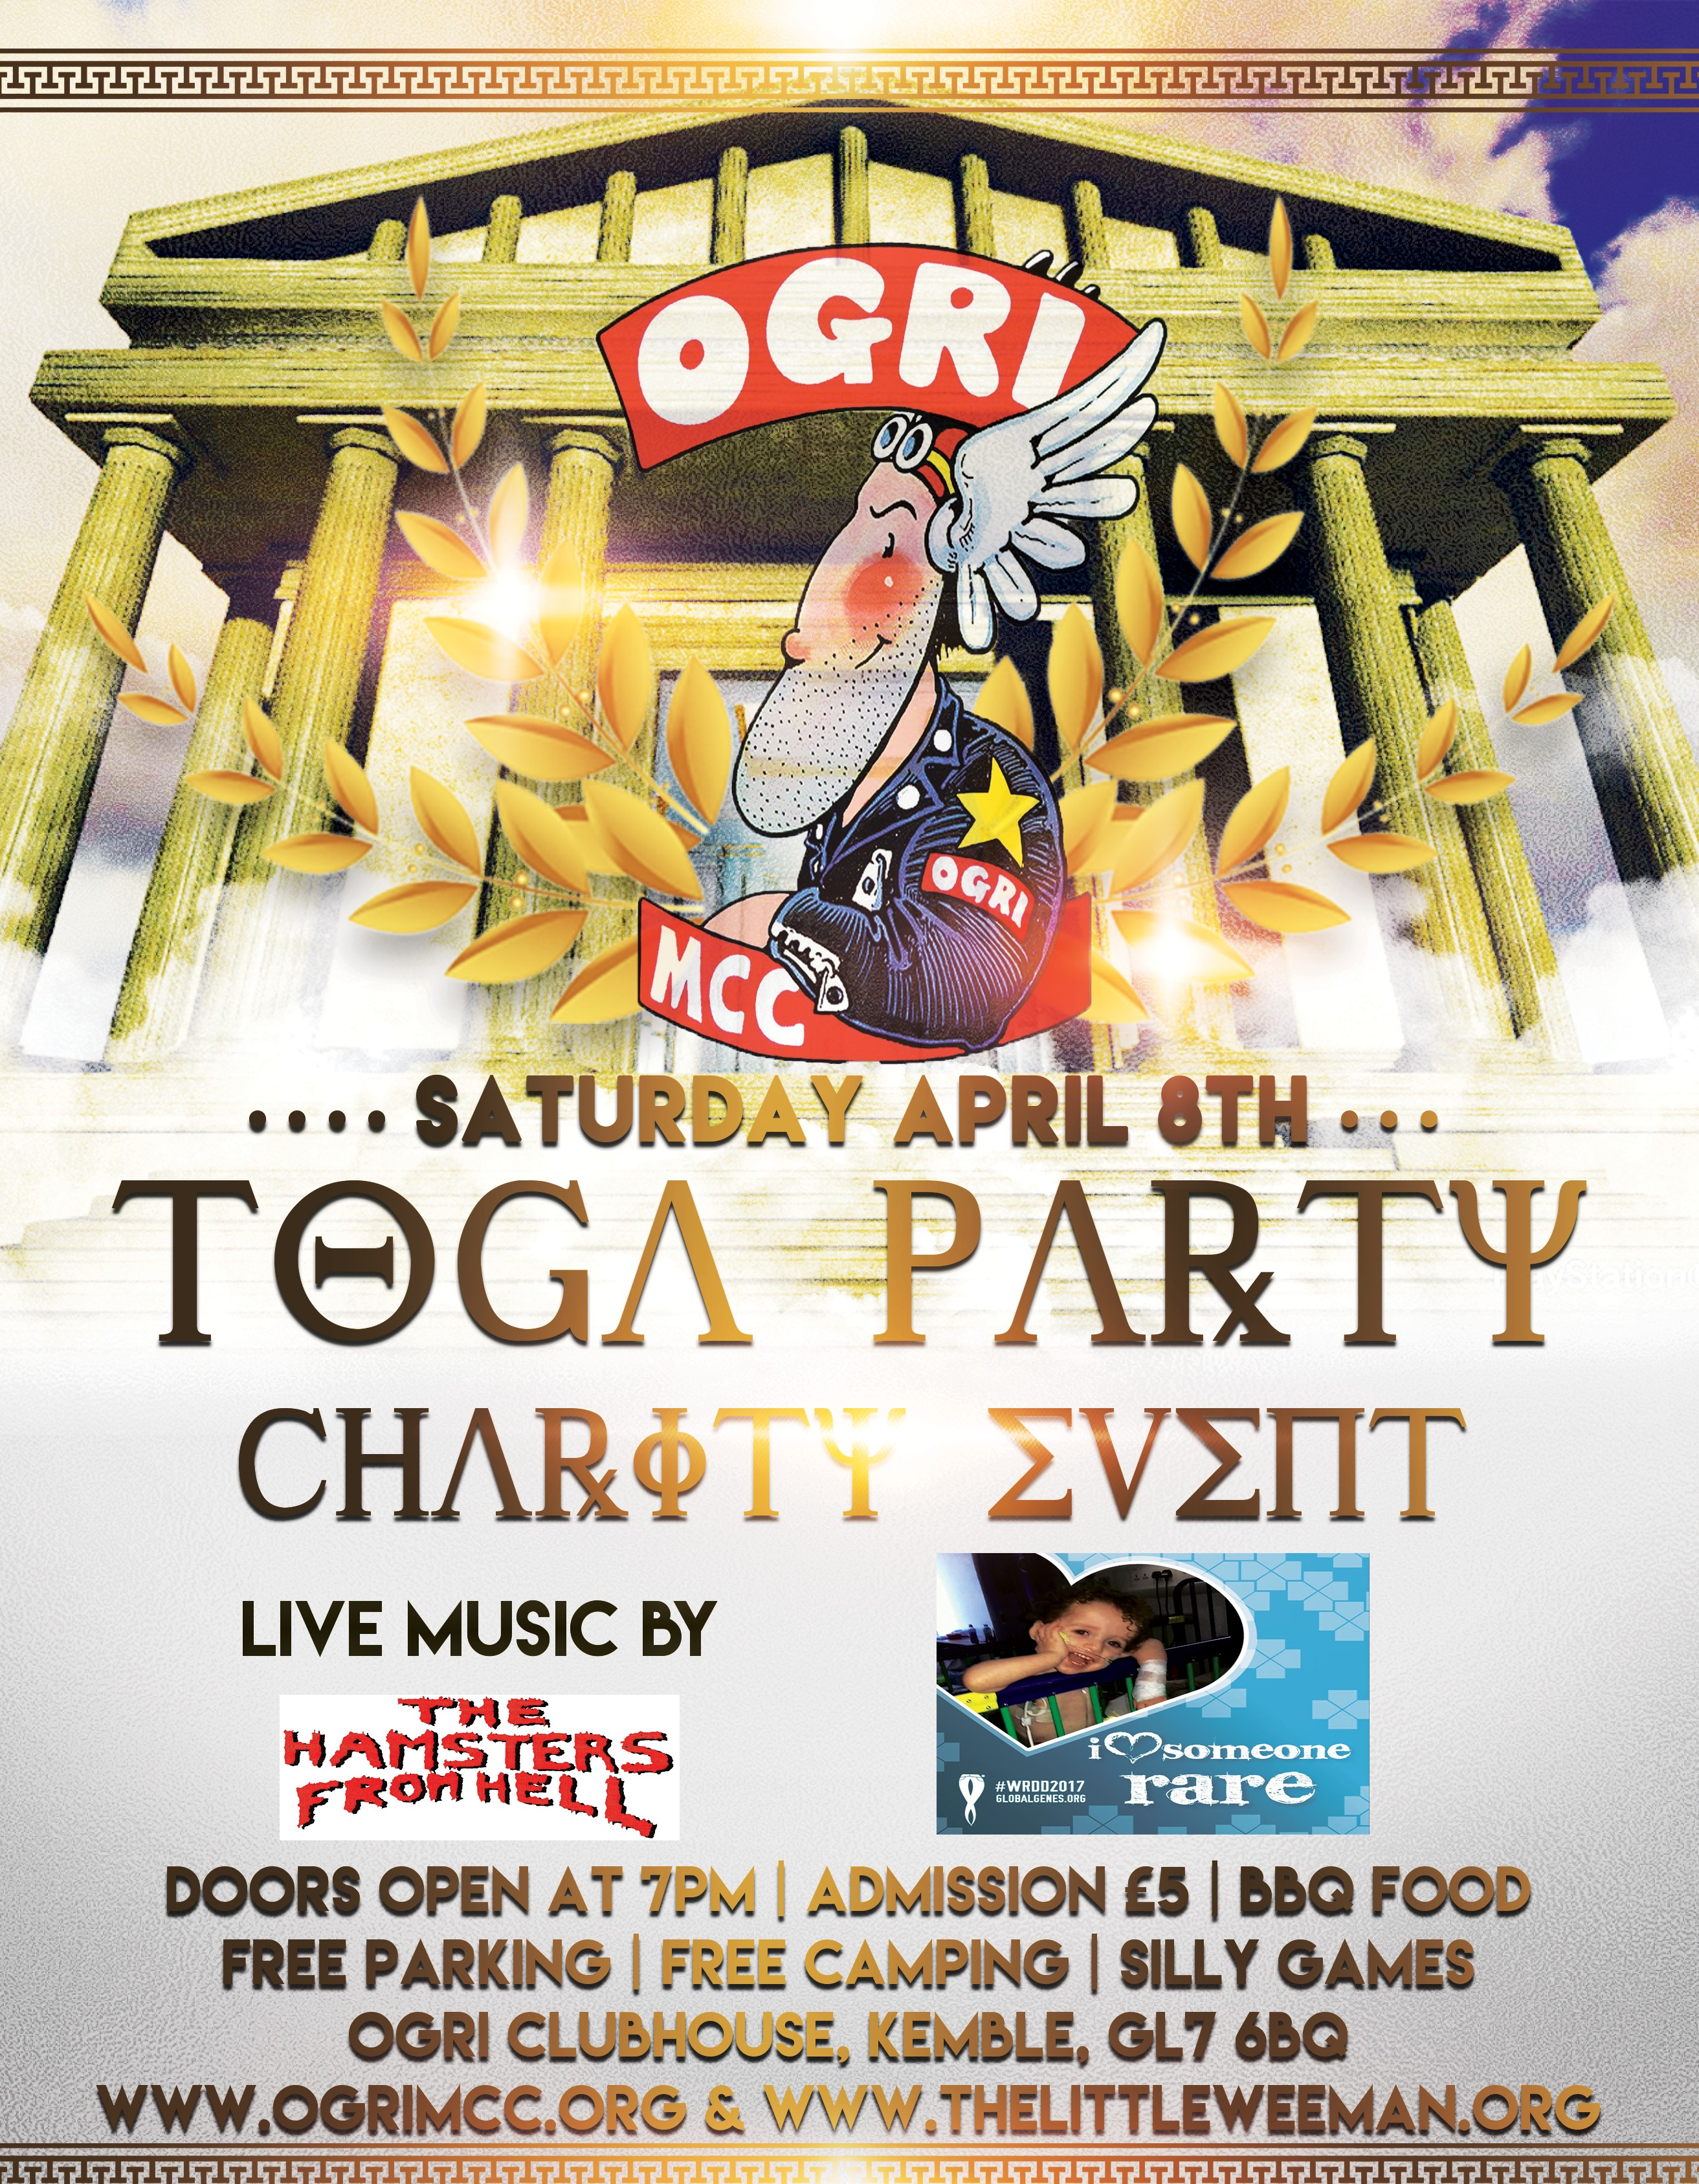 OGRI MCC Charity Toga Party image